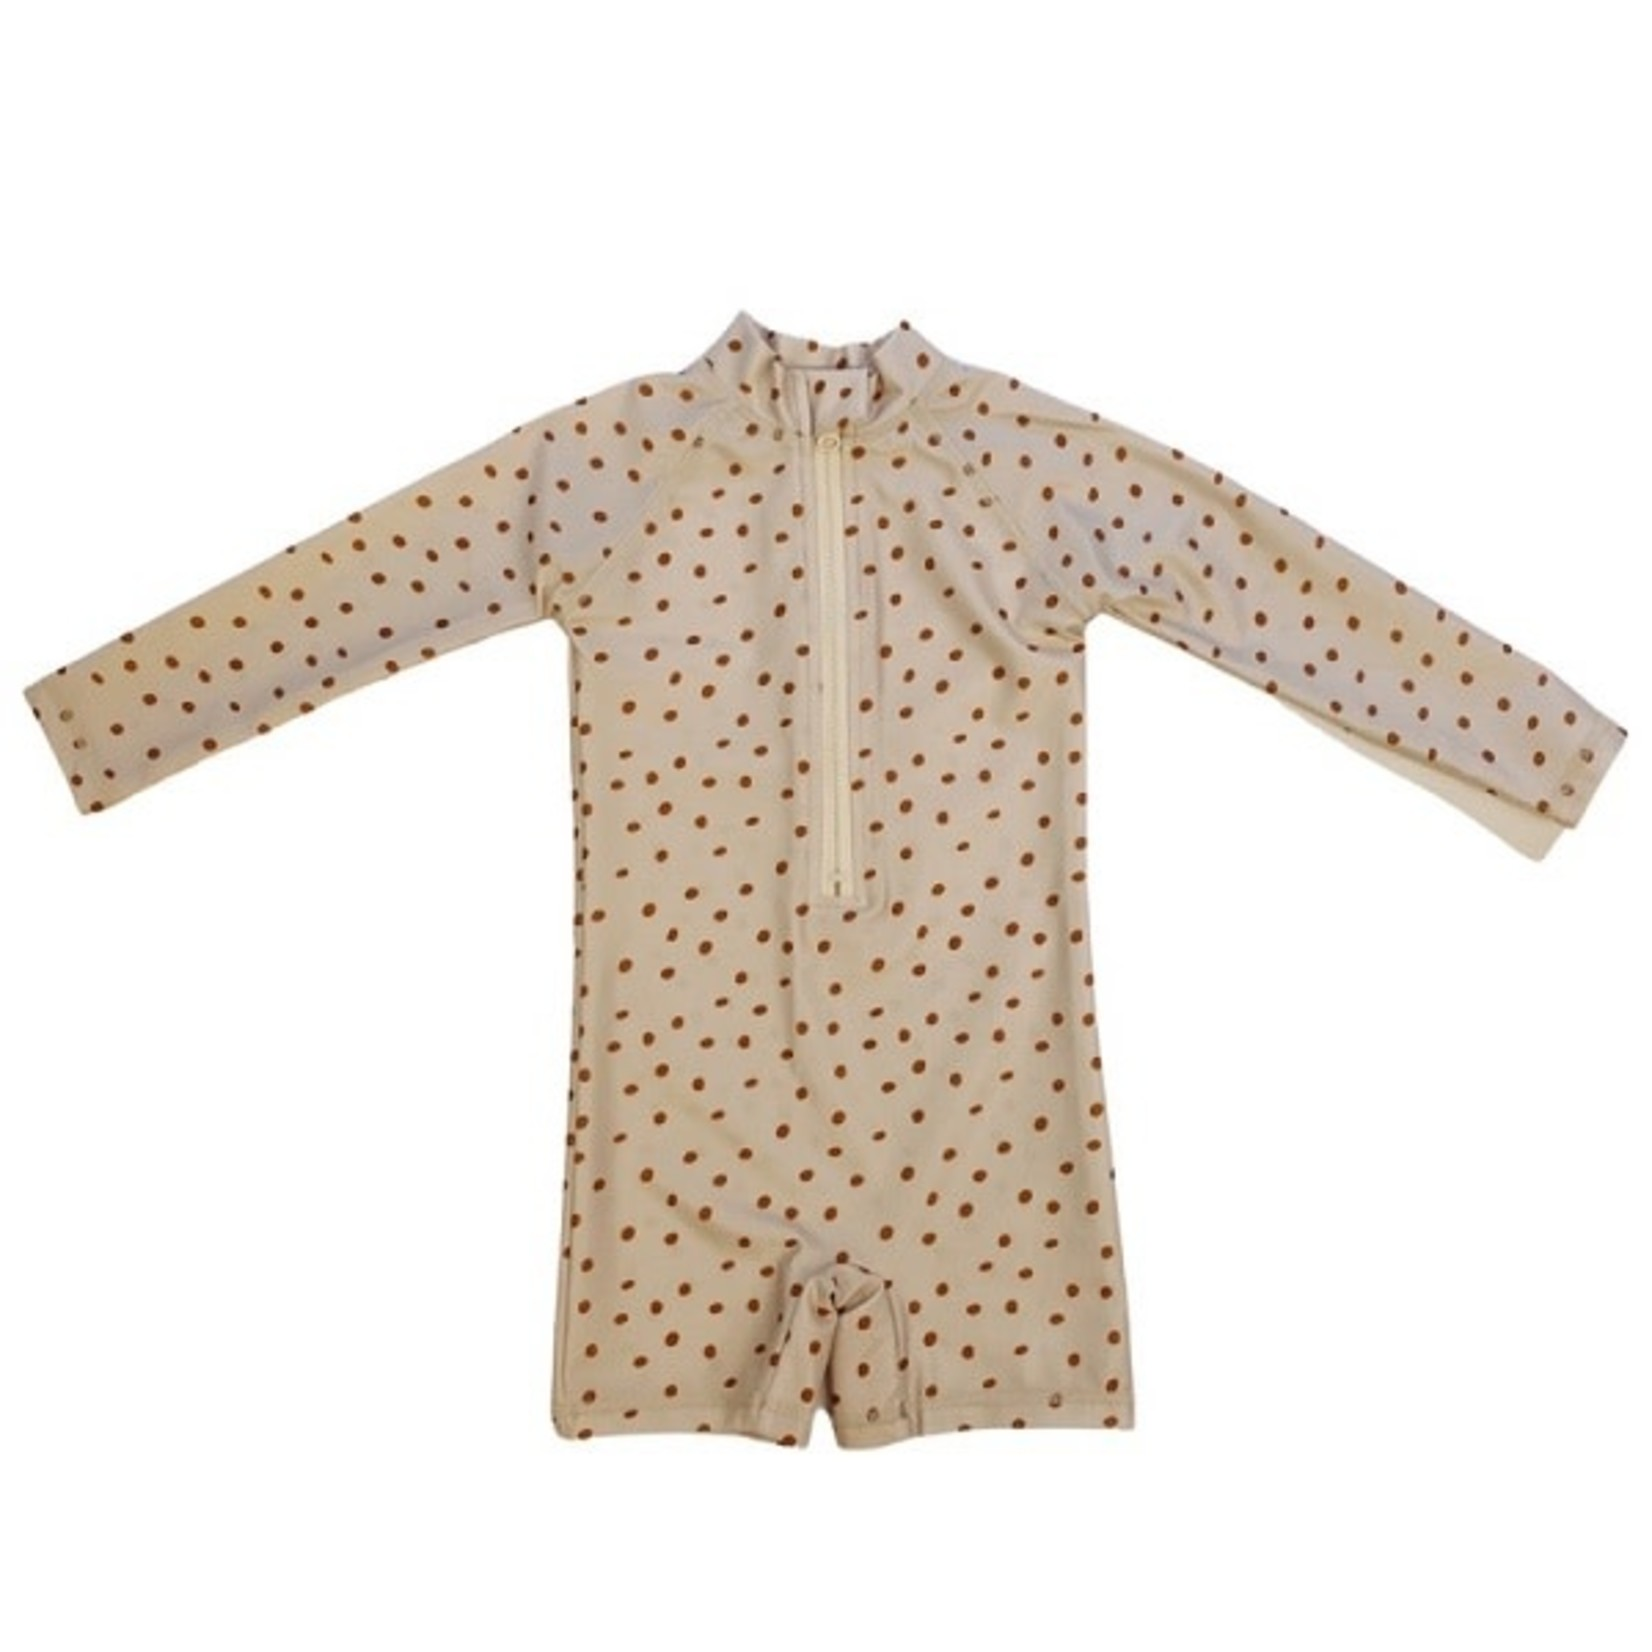 Ollie and Squish Mali Suit